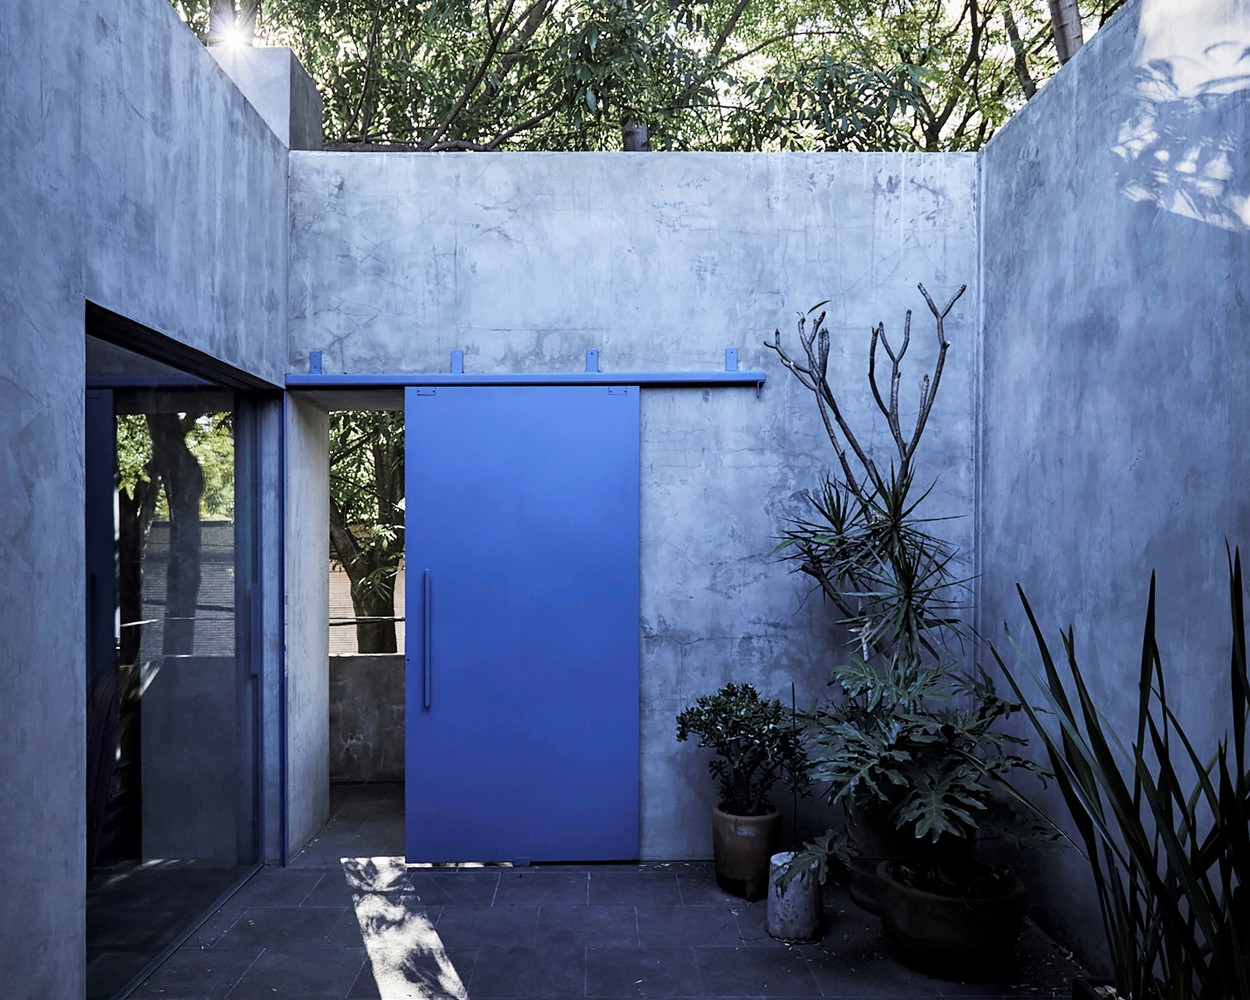 A concrete house with a blue front door features an enclosed courtyard with cactus and succulent plants.